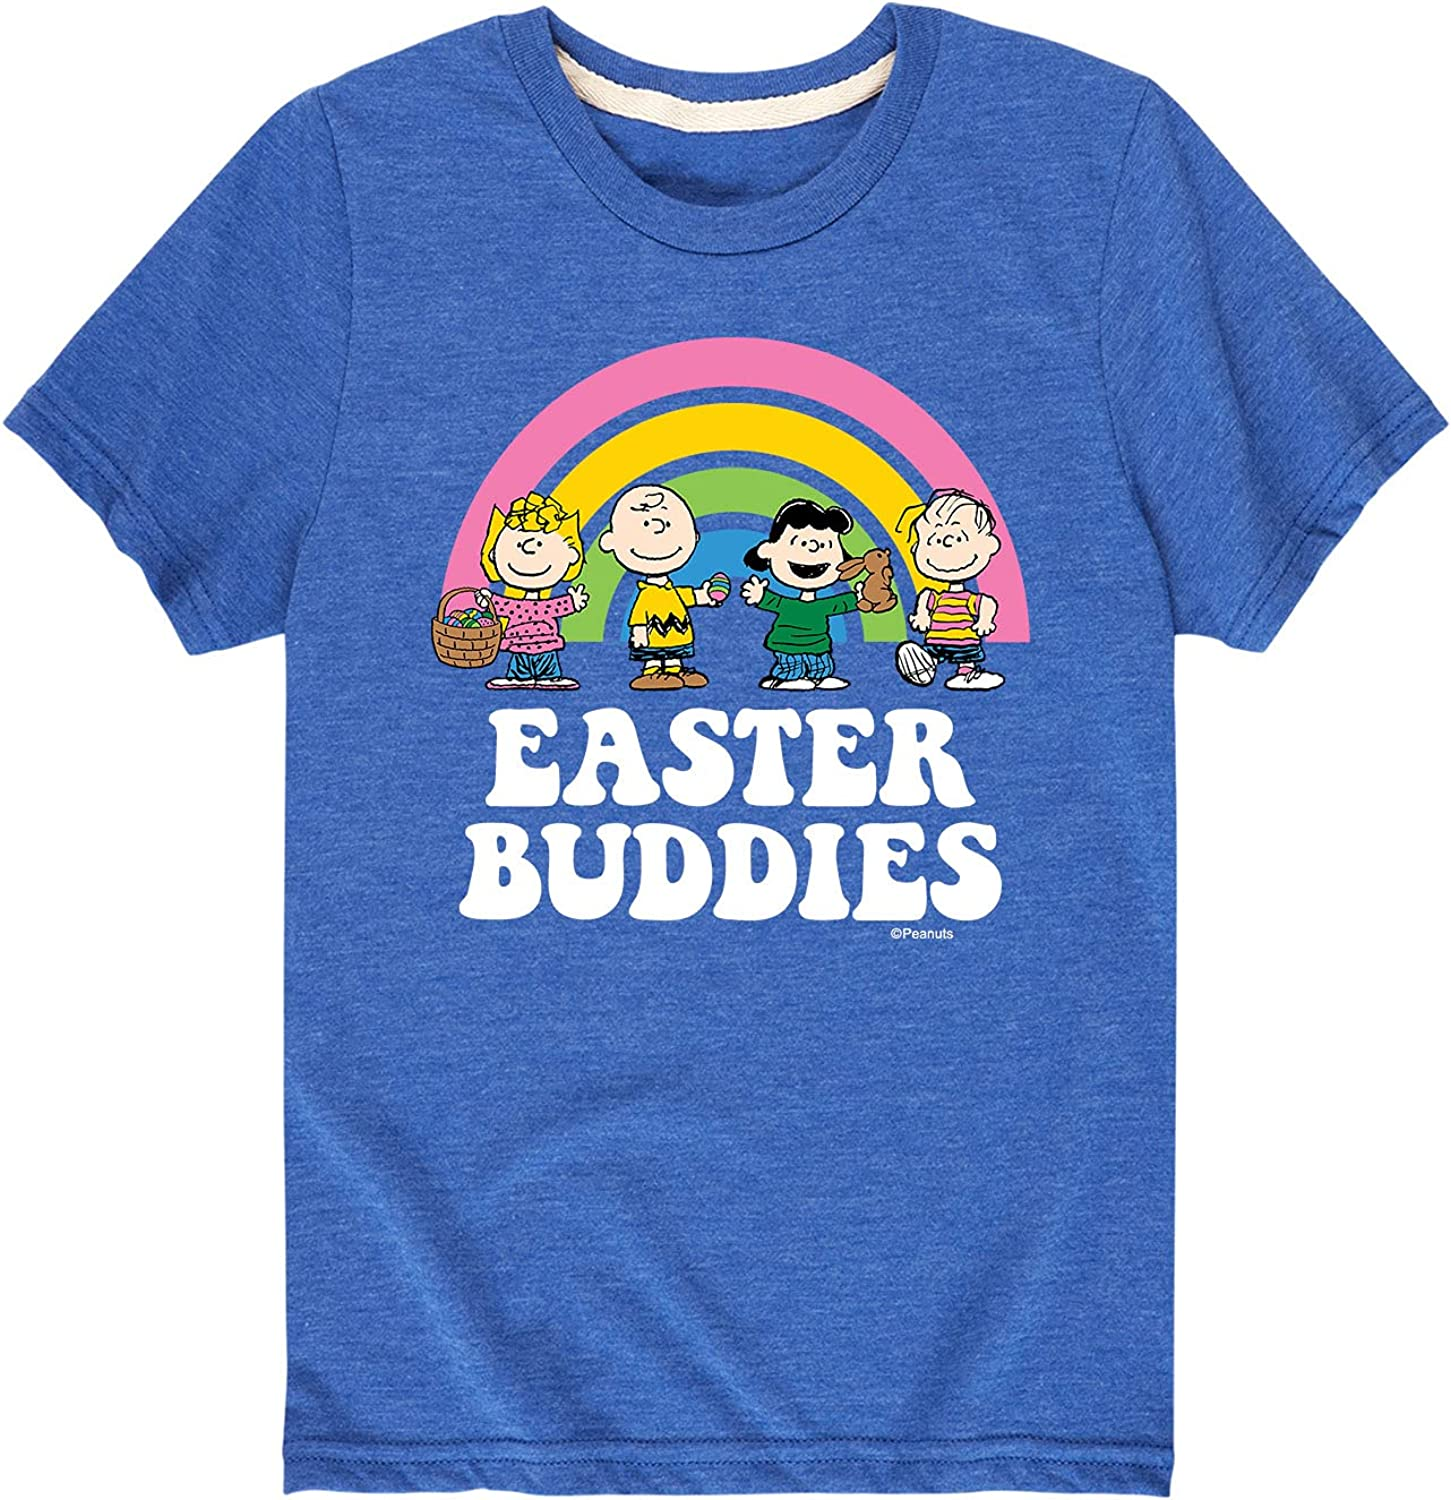 Peanuts - Easter Buddies-Toddler and Youth Short Sleeve Graphic T-Shirt